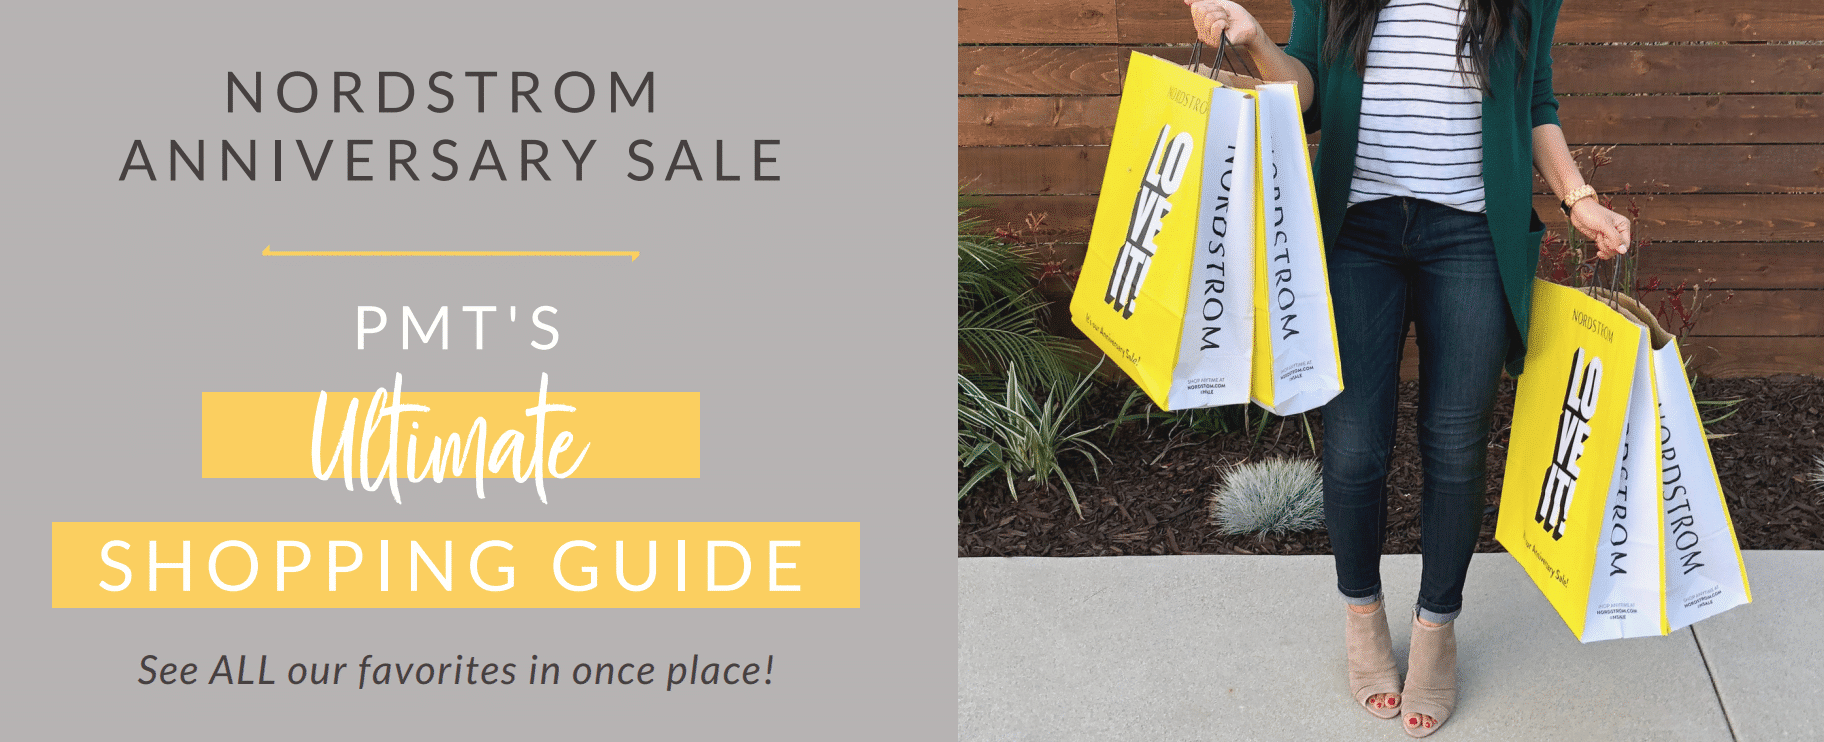 PMT's Nordstrom Anniversary Sale Ultimate Shopping Guide